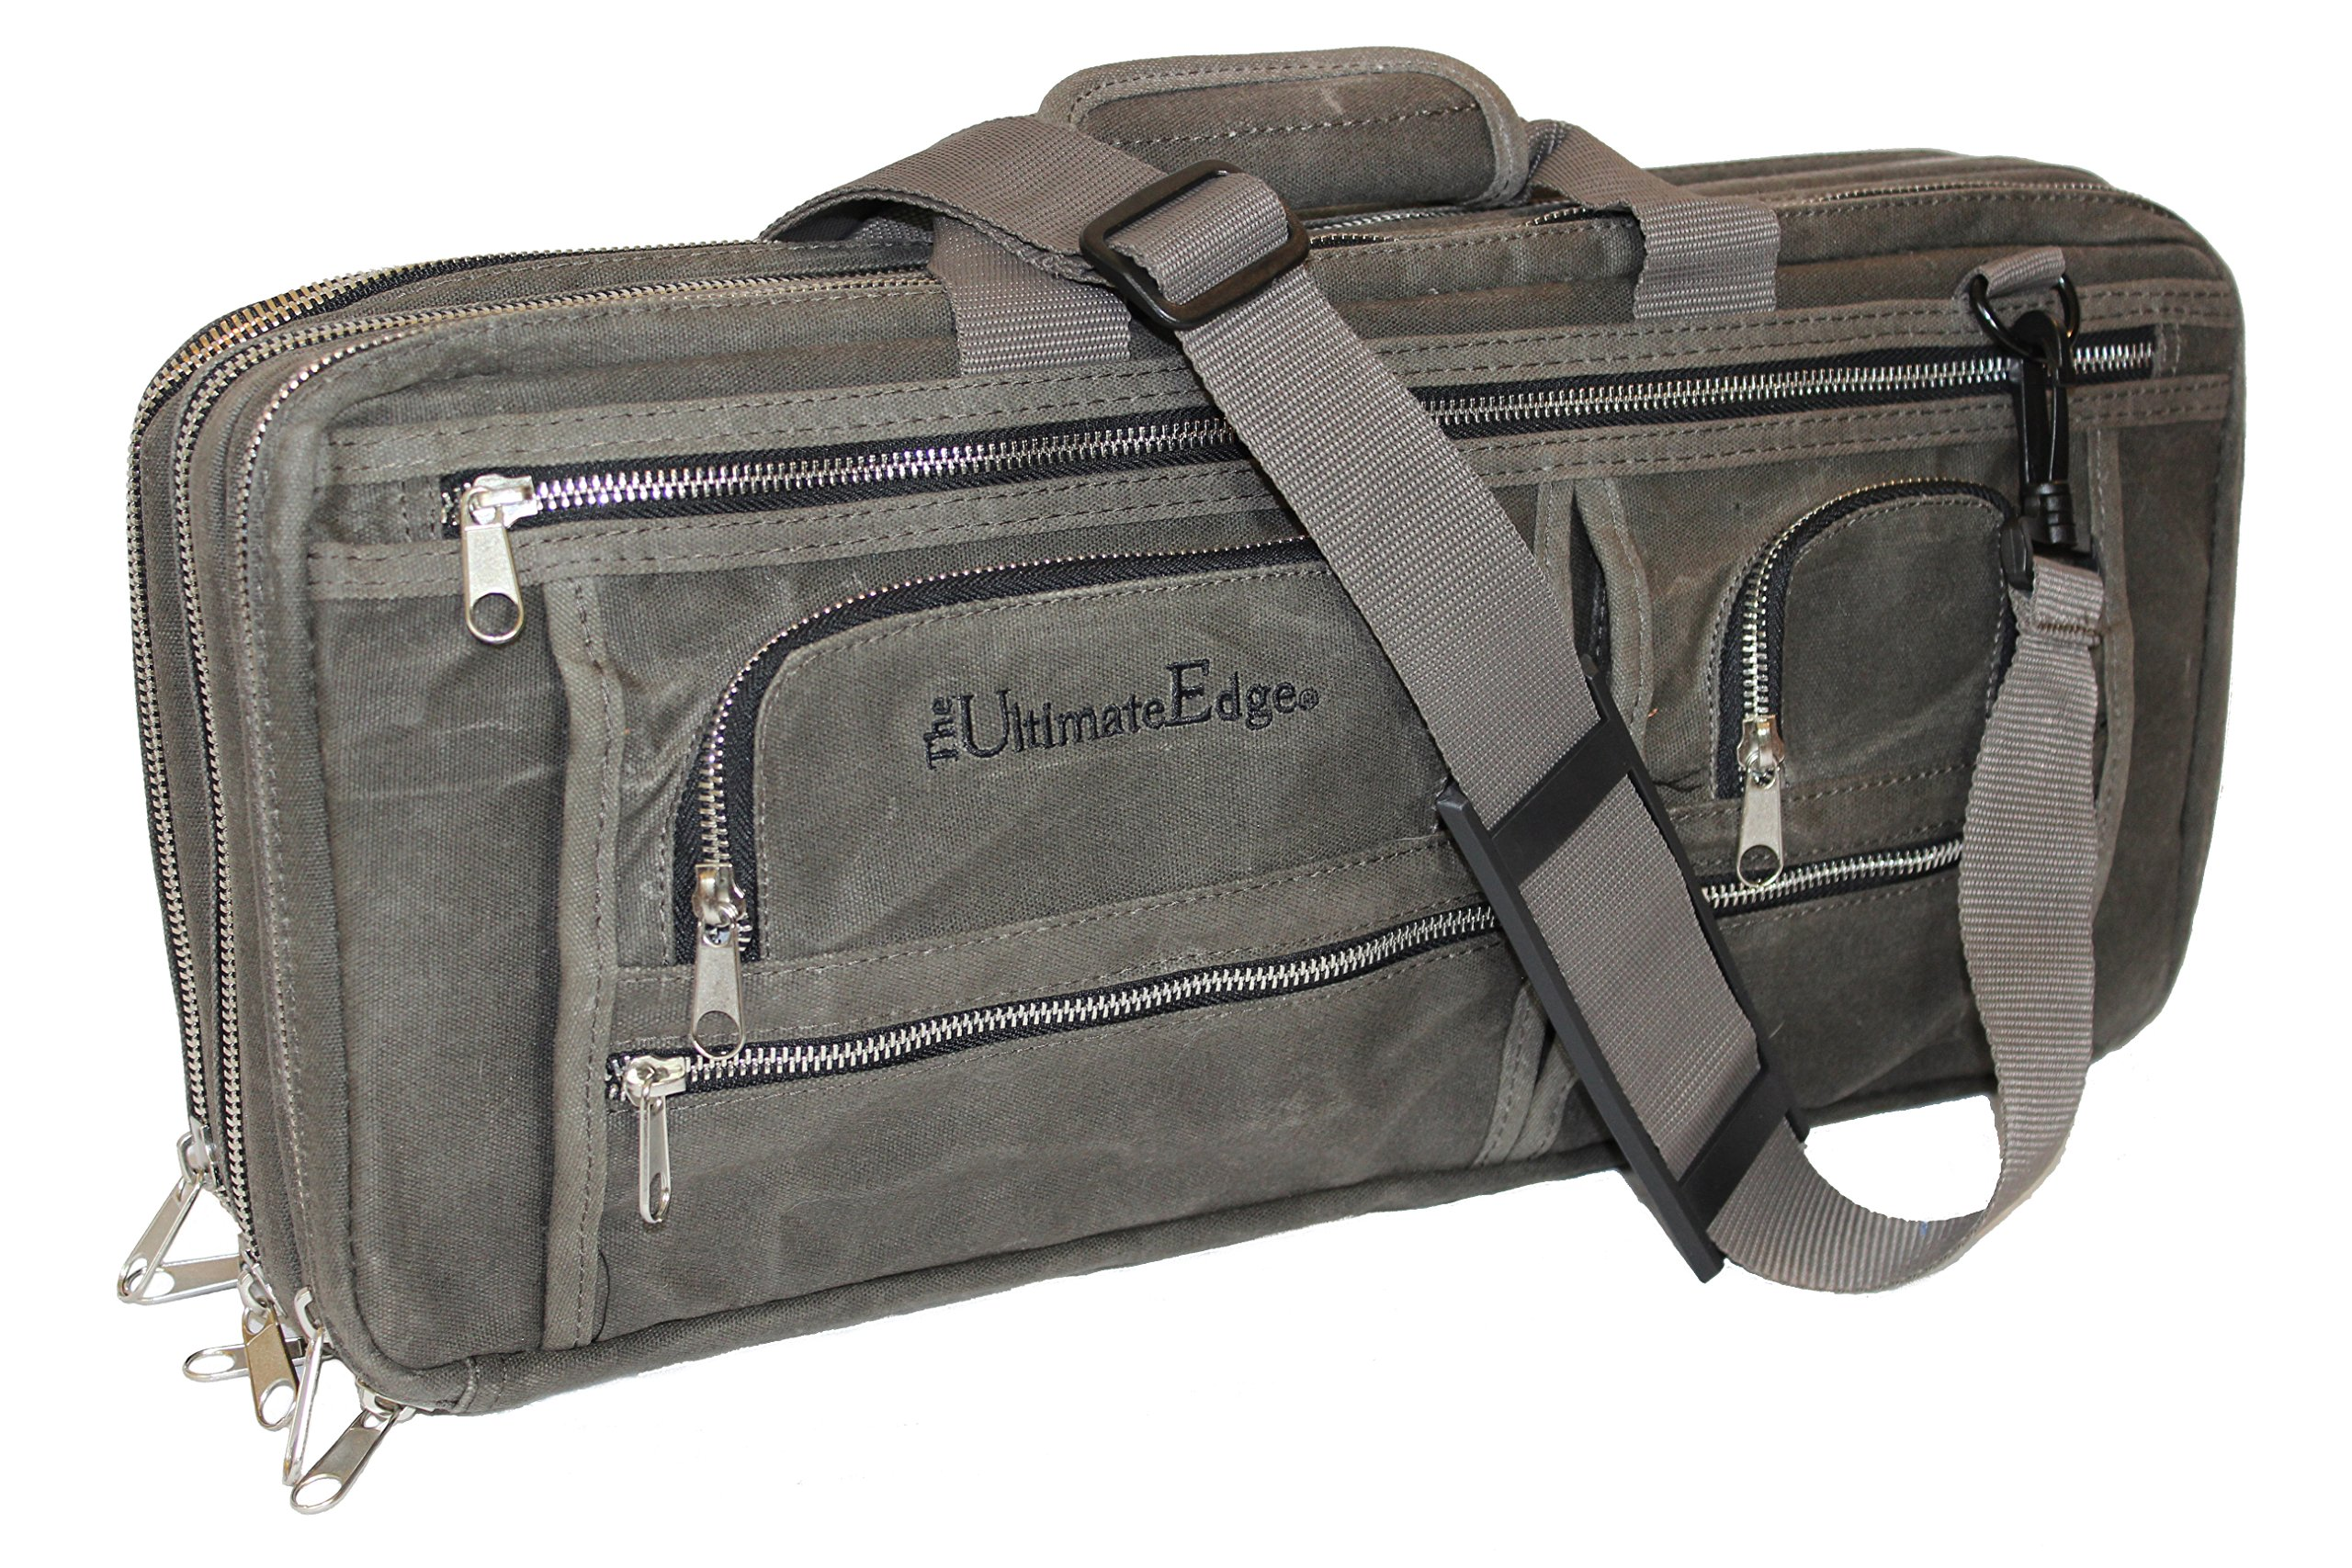 The Ultimate Edge 2001-EDOWS (OIL WAXED CANVAS) Knife Case, Smoke by The Ultimate Edge